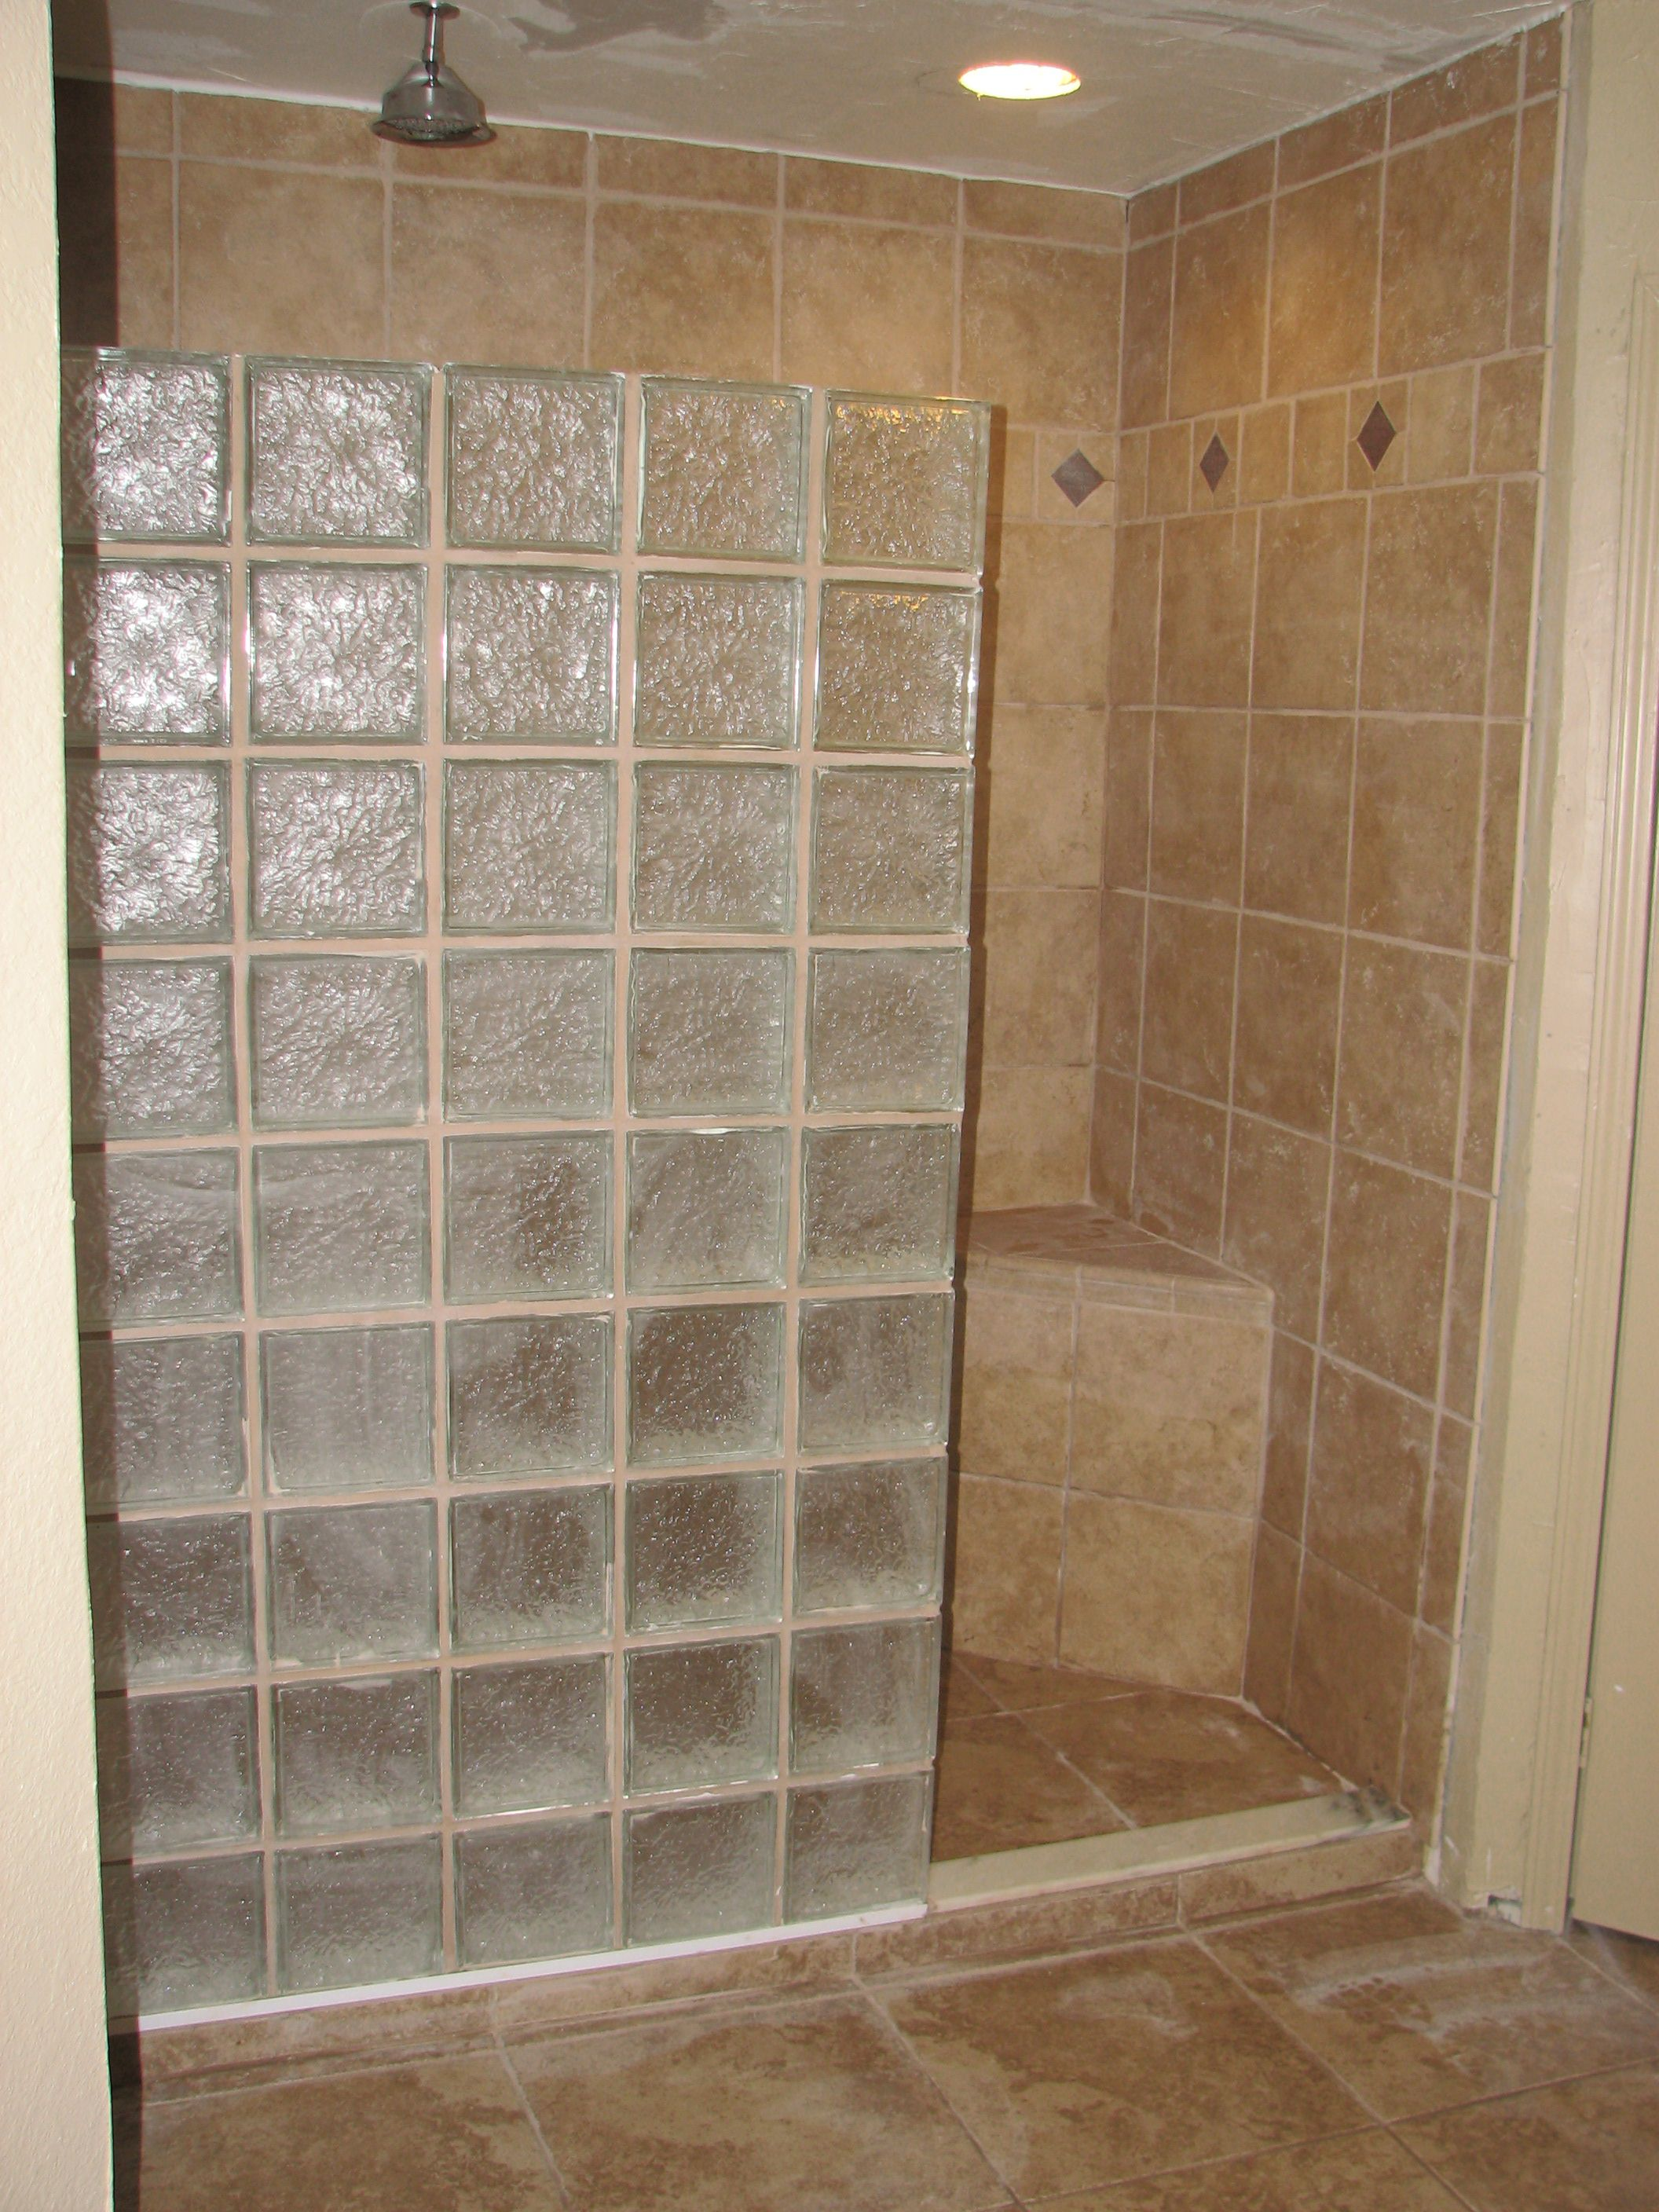 bathroom small bathroom remodeling bathroom remodel construction and handyman services shop small network bathroom renovations - Small Bathroom Remodel Ideas 2